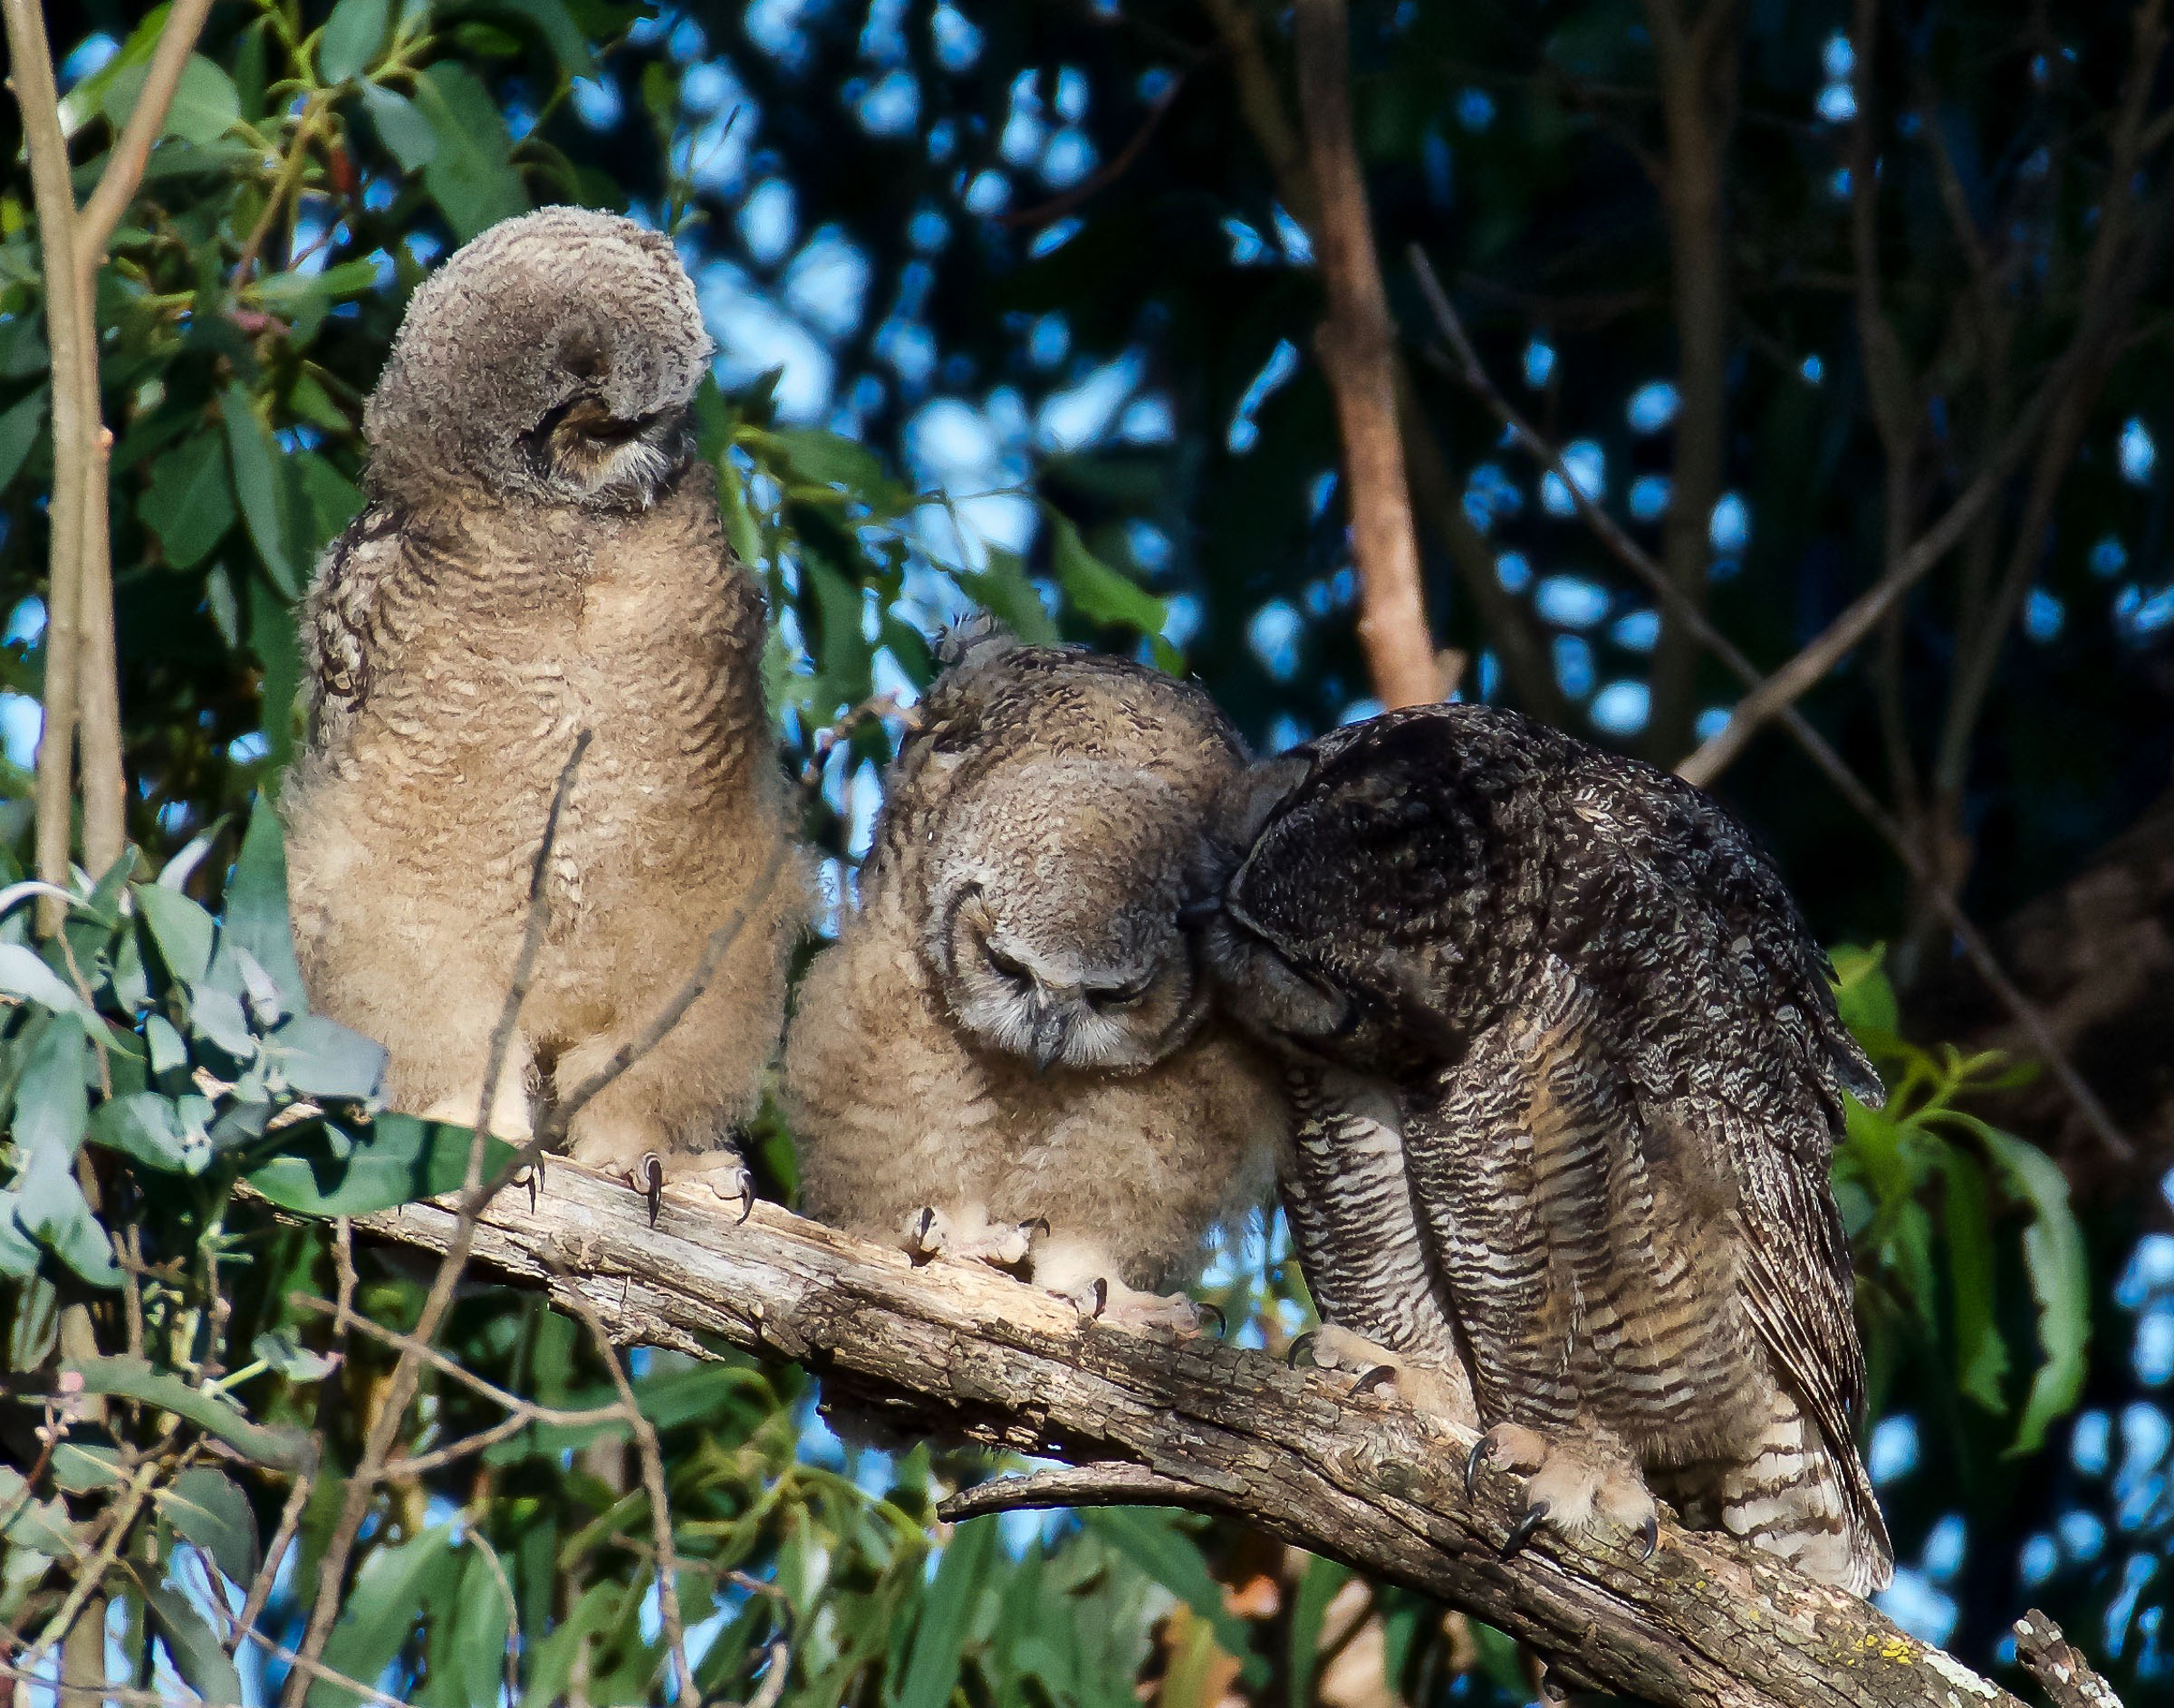 mother-great-horned-owl-grooming-owlets-6.jpg